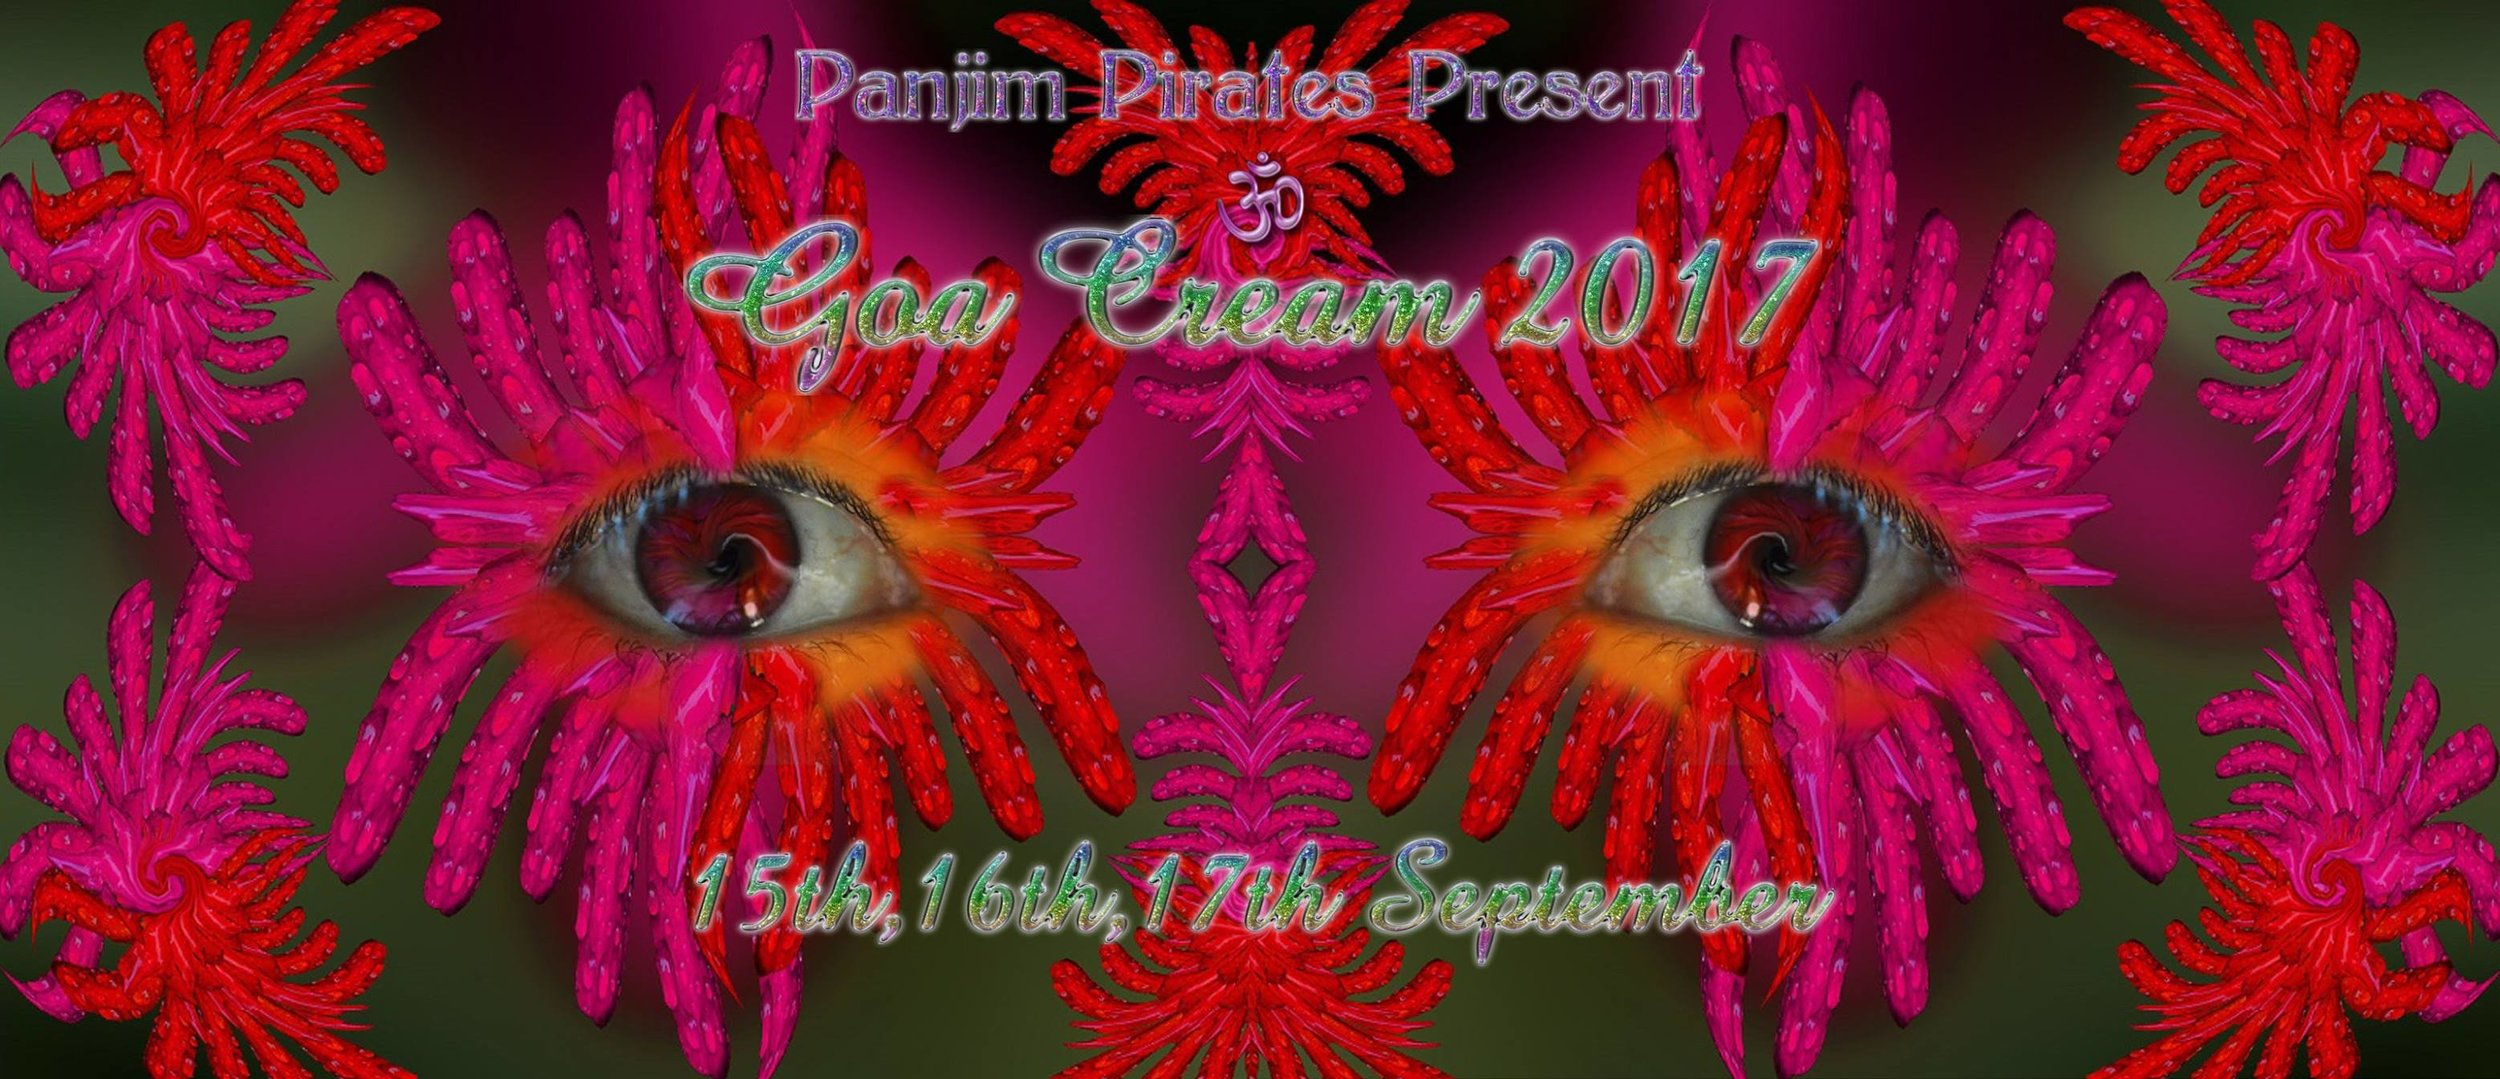 Goa Cream 2017 - for all up to date details:   http://www.goacream.com/  or  https://www.facebook.com/events/112486906114759